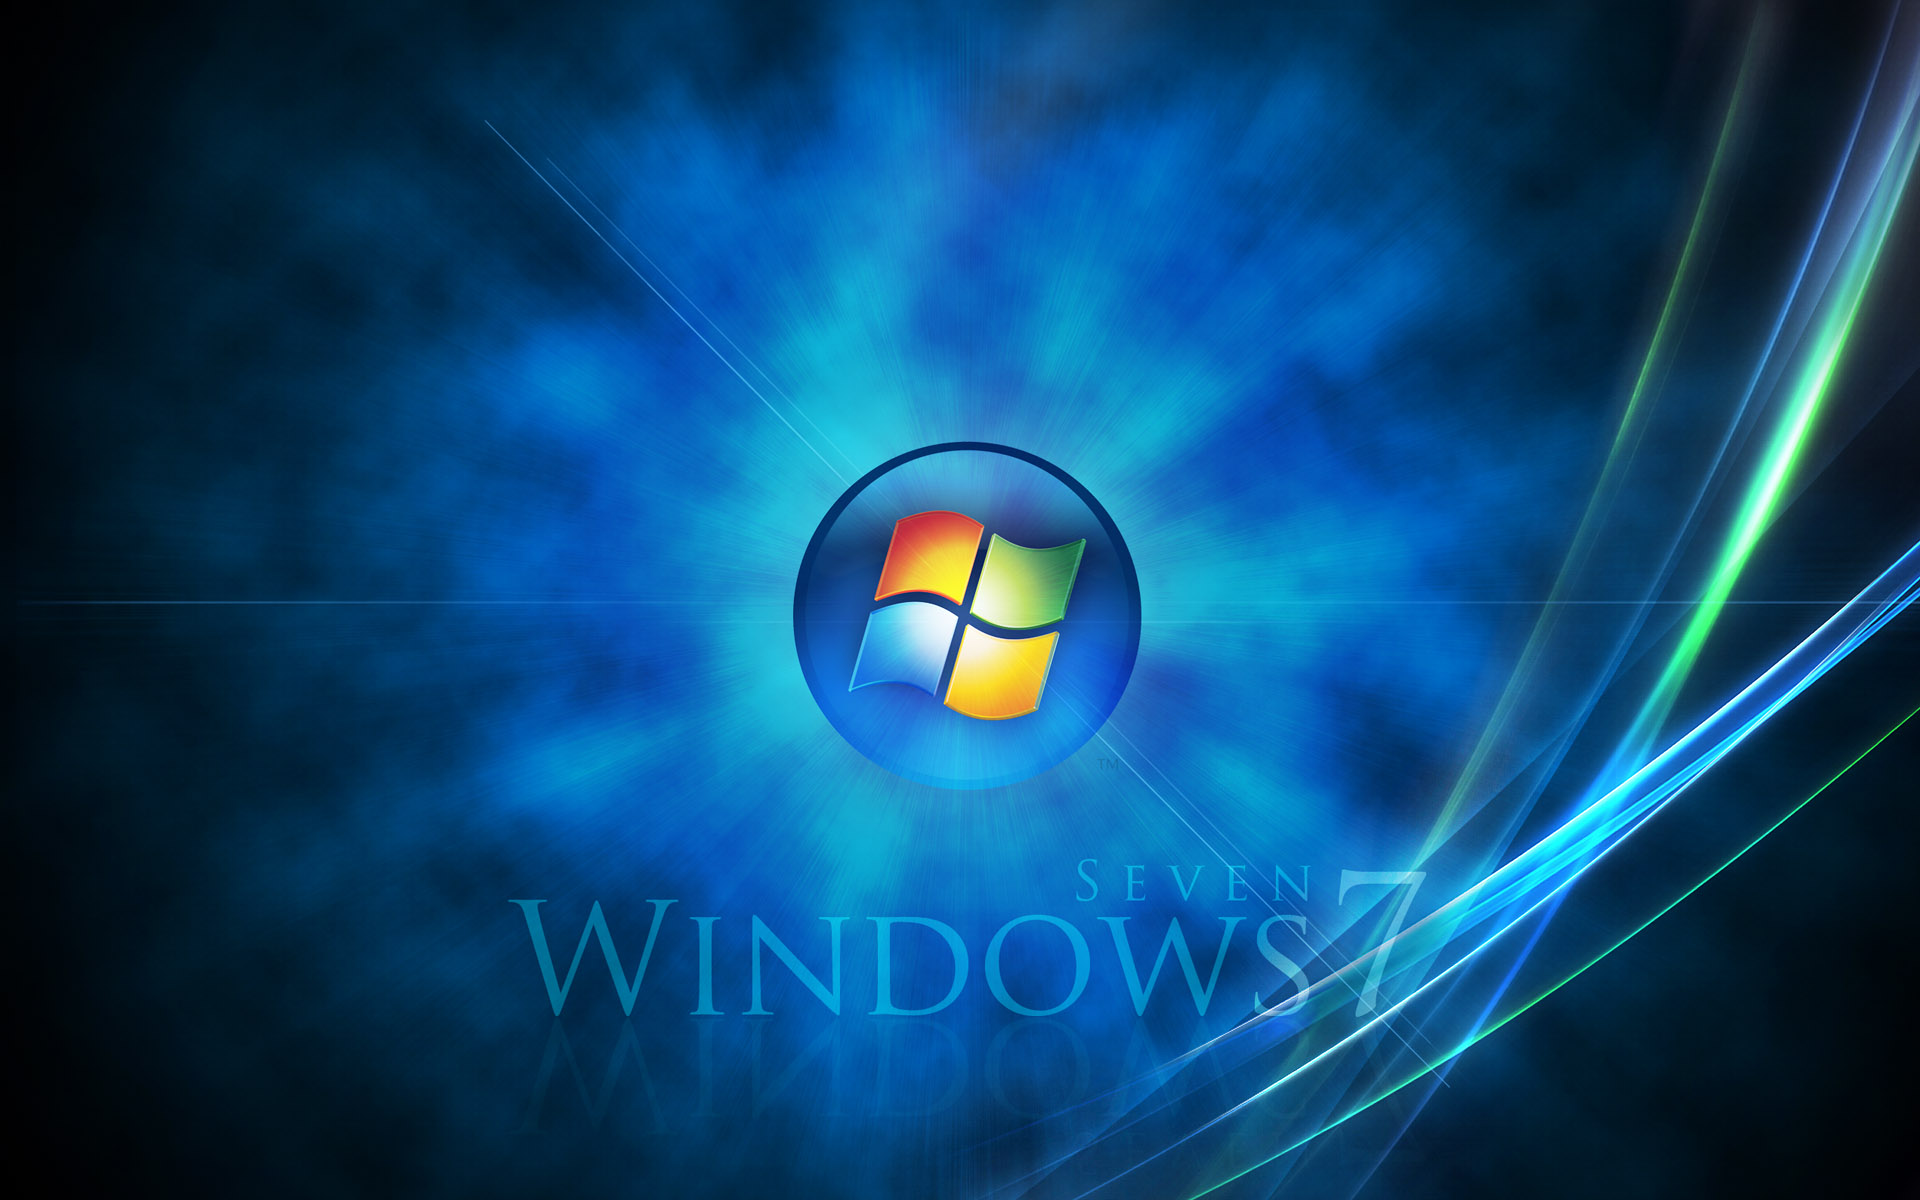 Windows 7 Wallpapers Bureaublad achtergronden van Windows 7 1920x1200